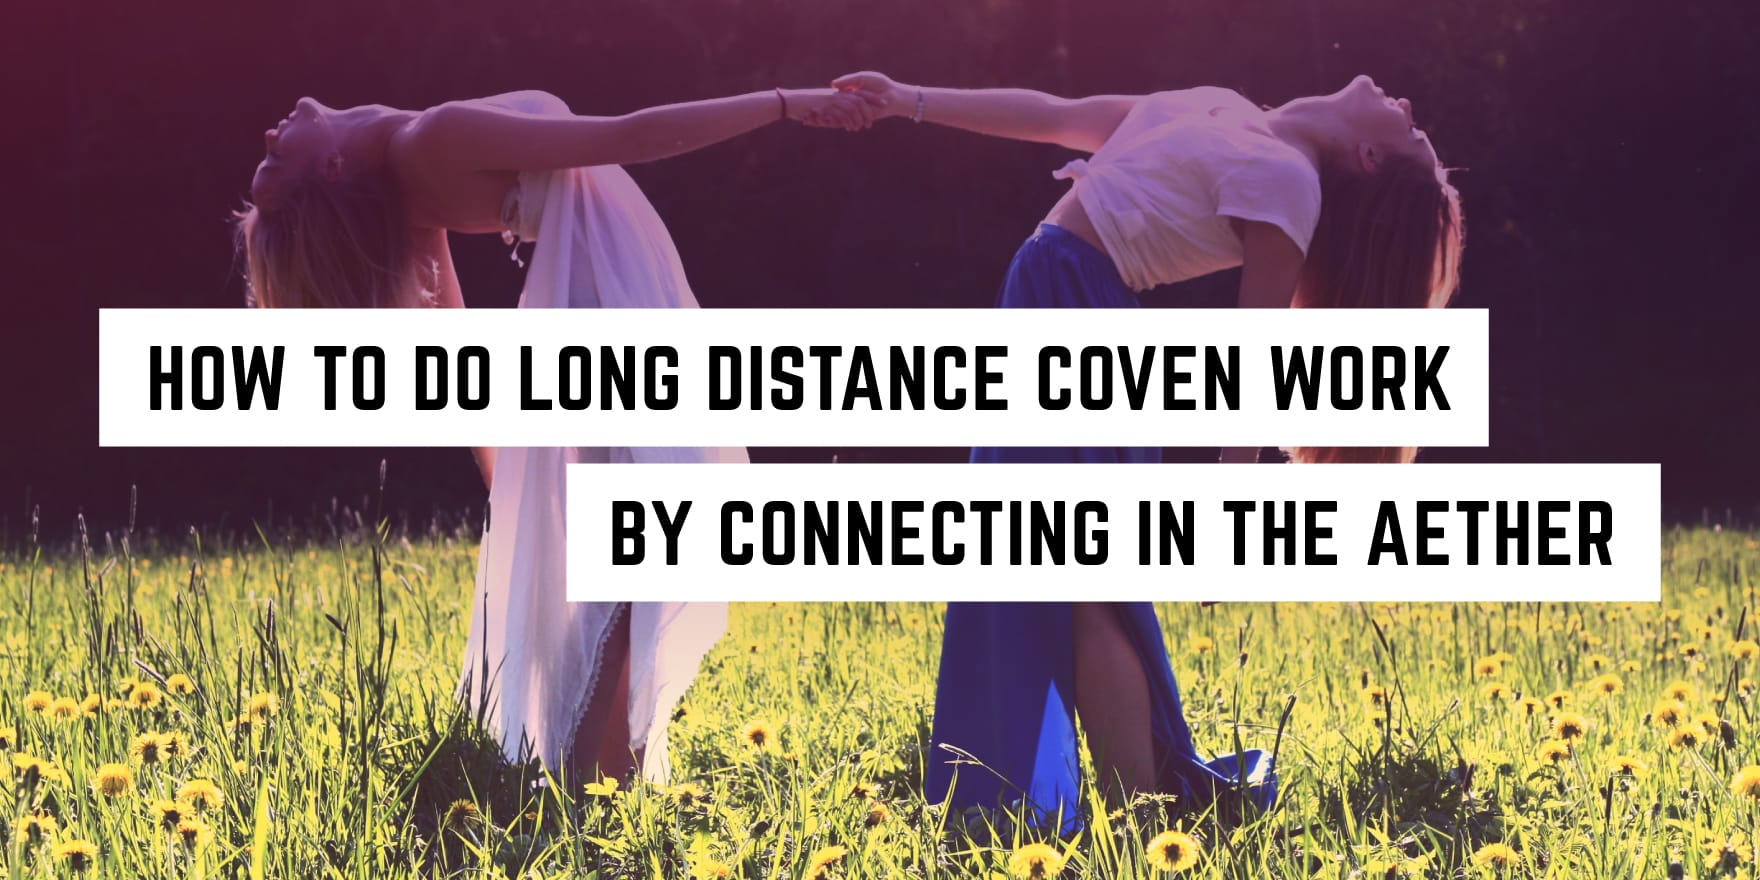 How To Do Long Distance Rituals By Connecting In The